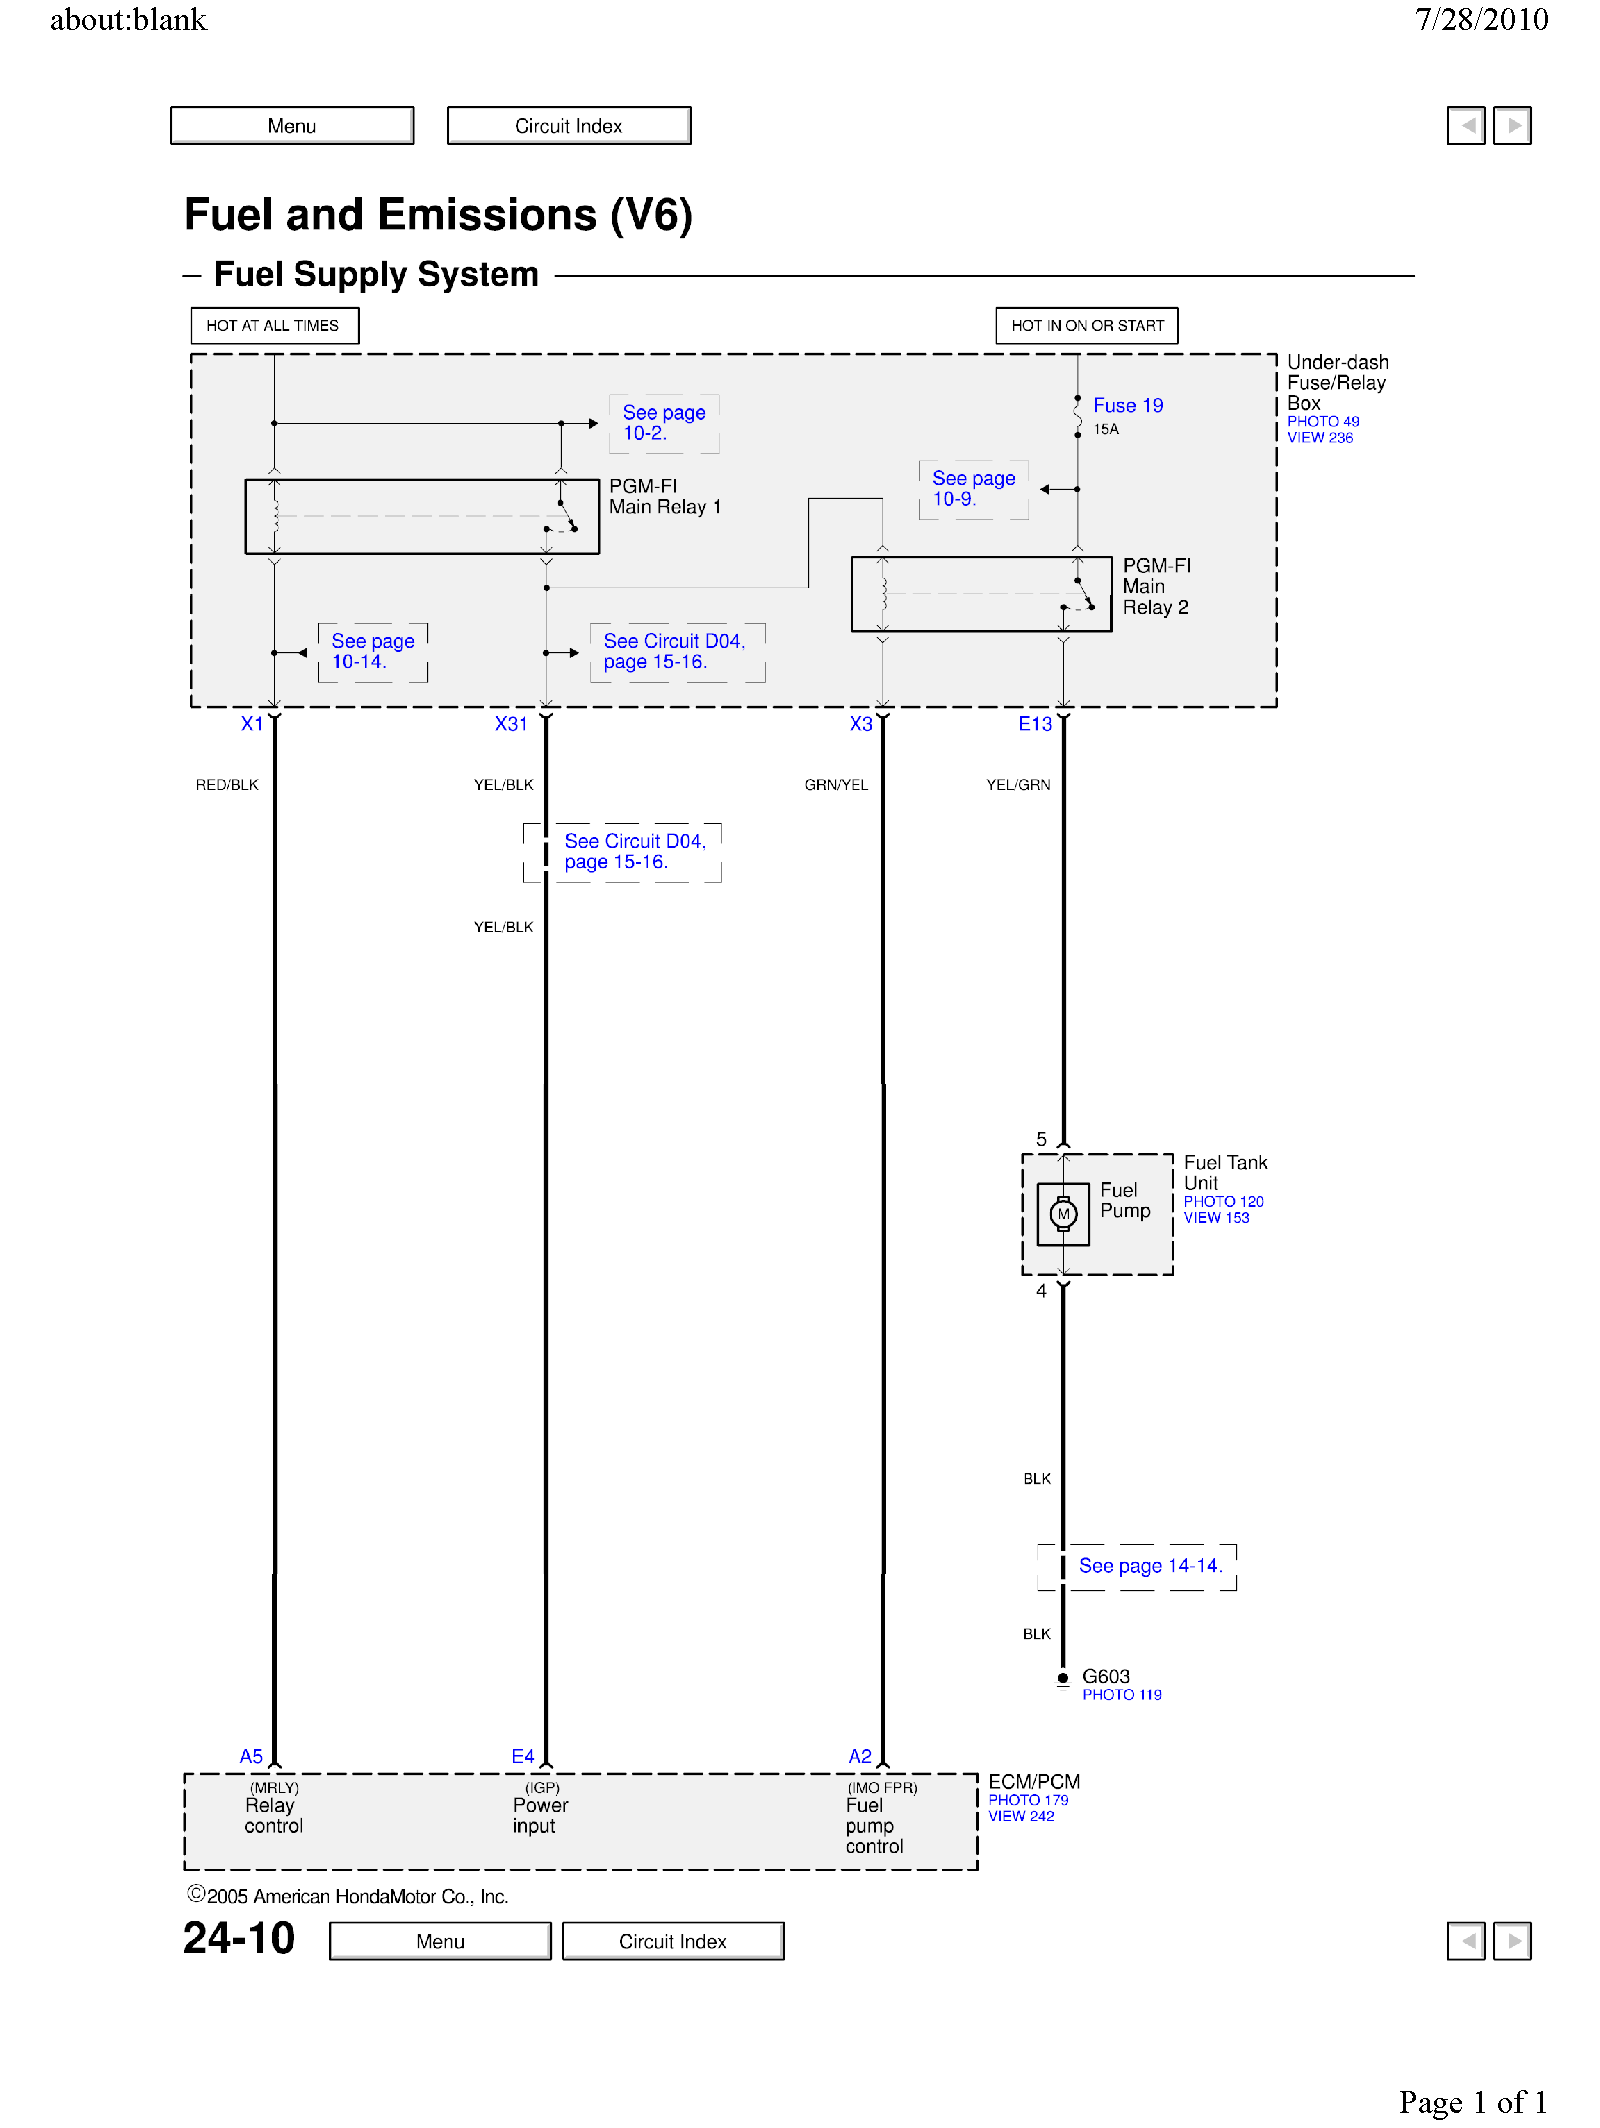 We Need Fuel Pumpelectrical Diagram For Honda Accord V6 3